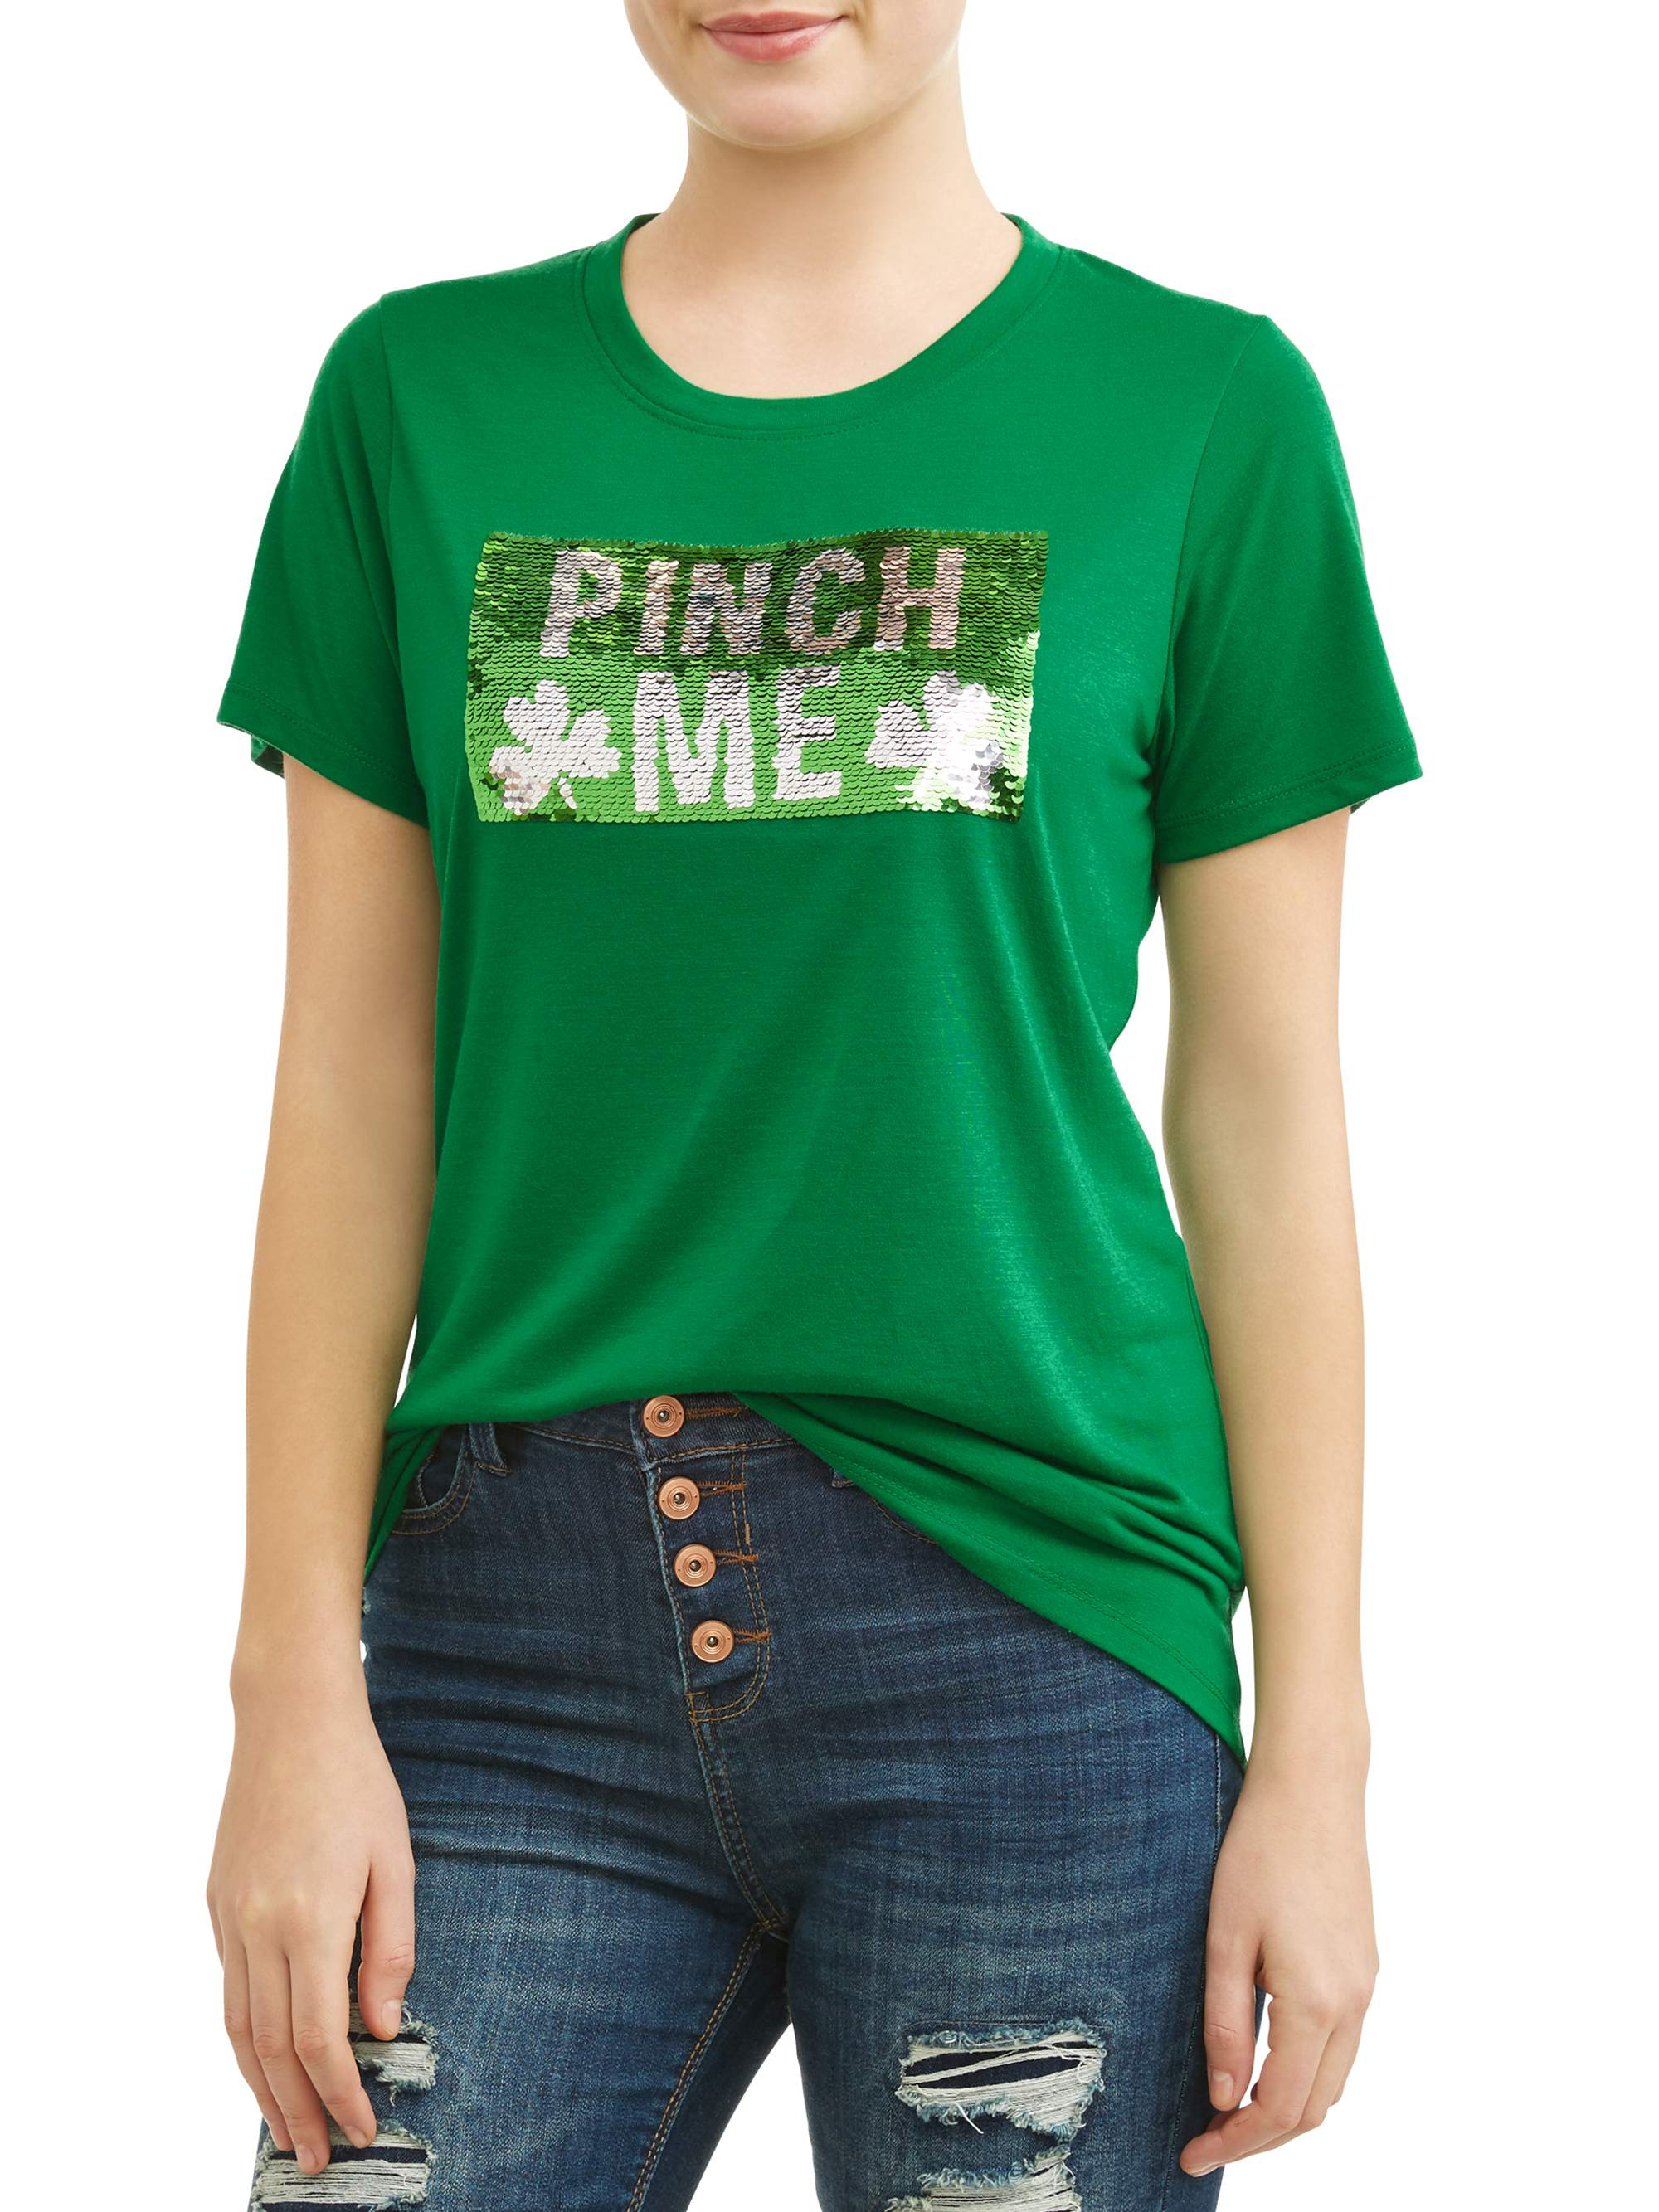 Juniors' St. Patrick's Day Short Sleeve Graphic T-Shirt